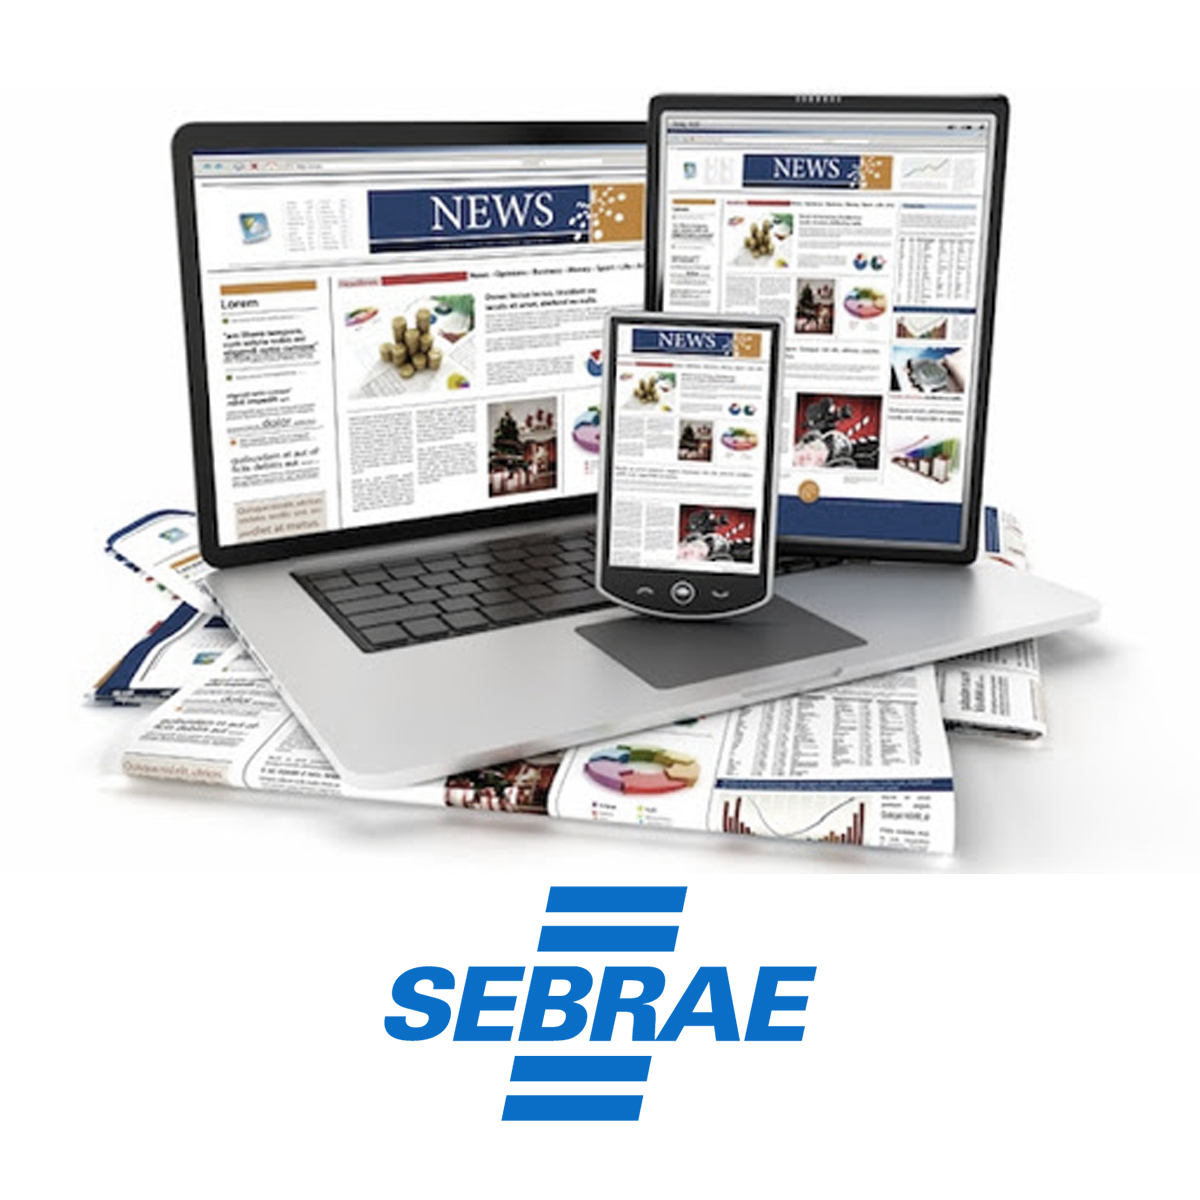 Clipping Sebrae e Banco do Nordeste firmam acordo